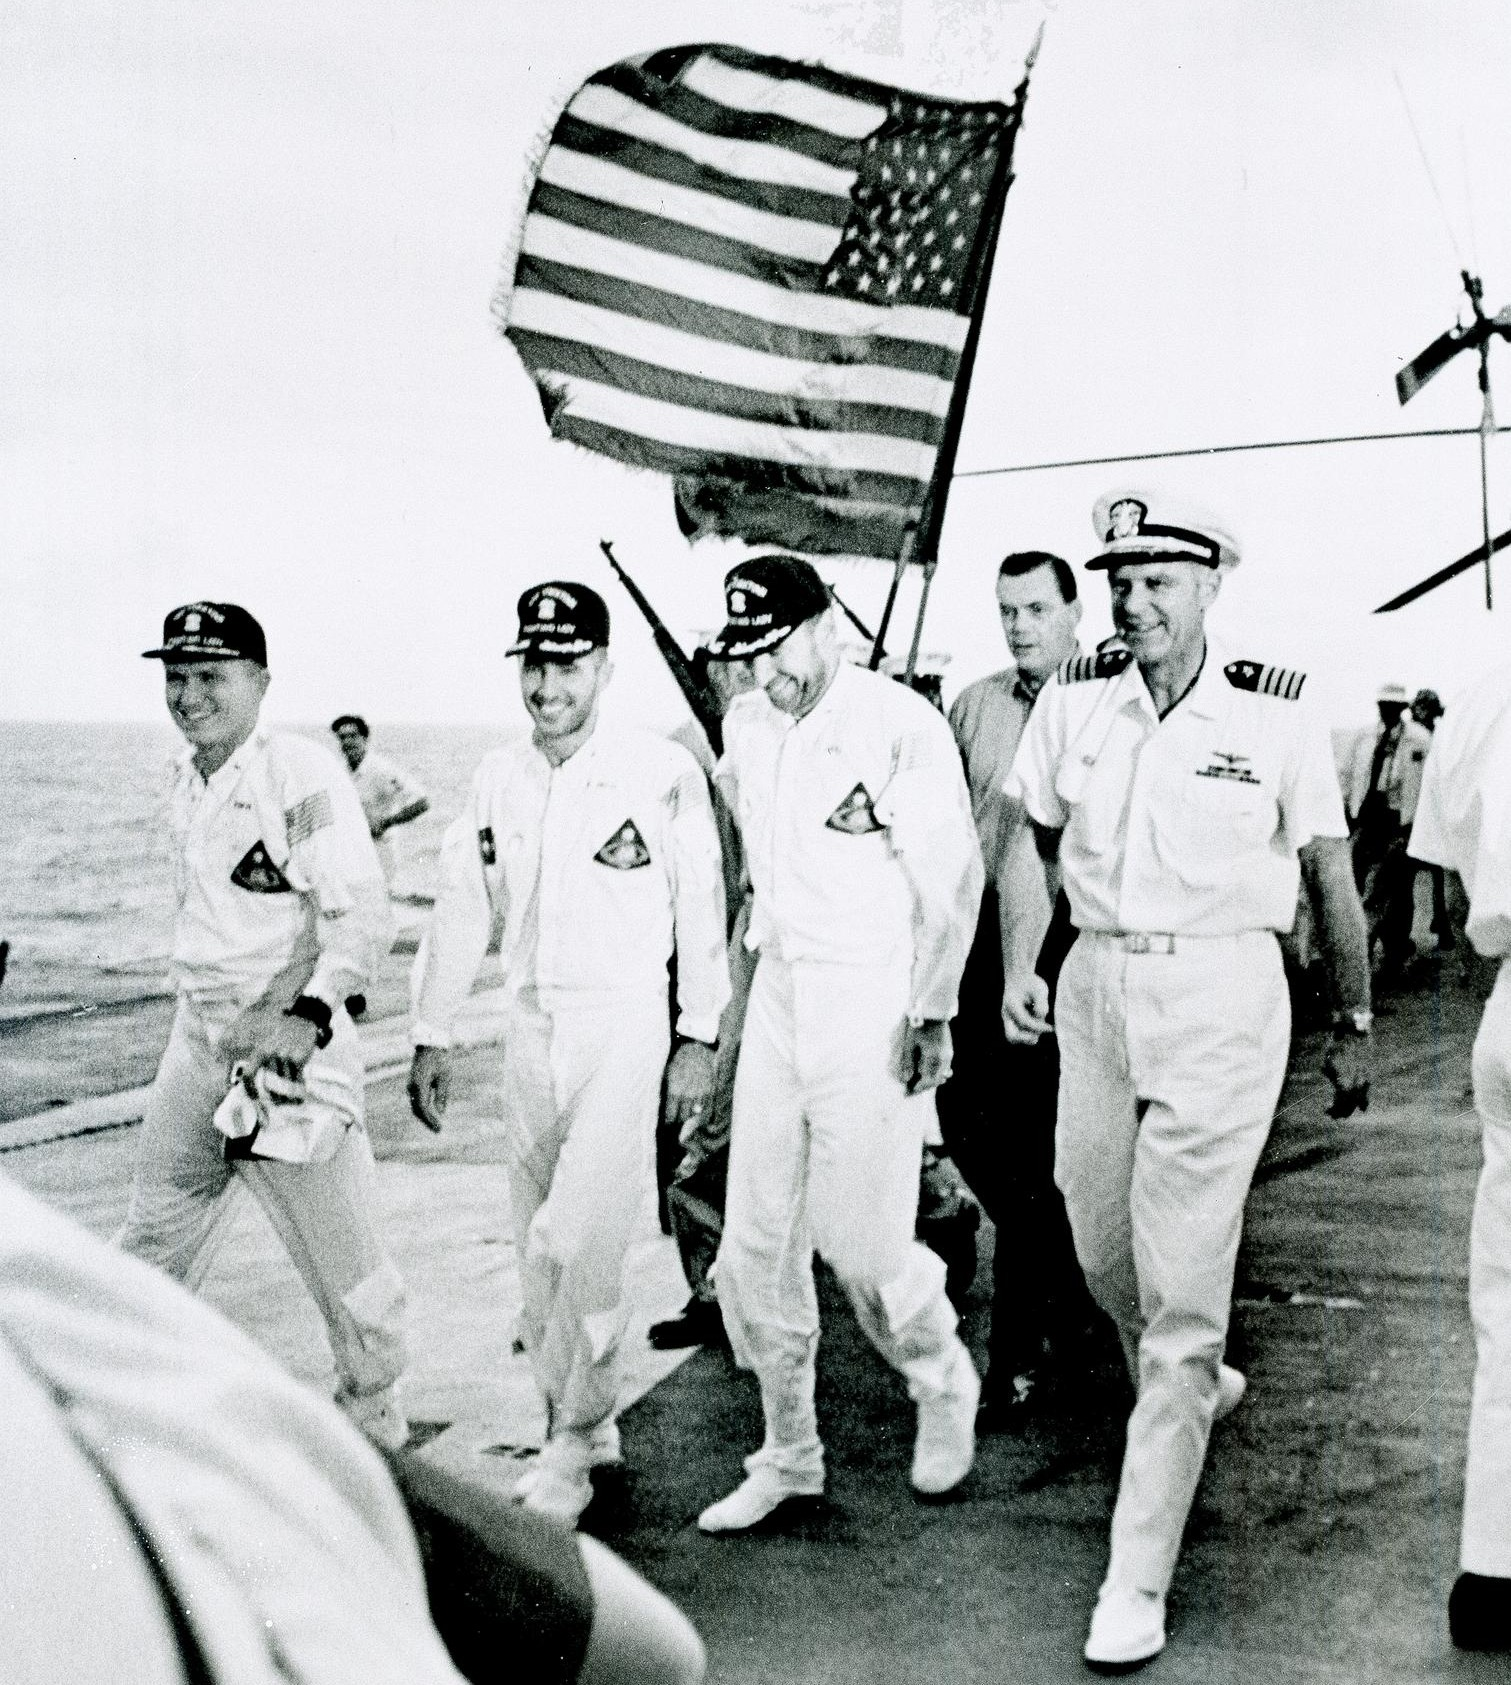 Apollo 8 astronauts and commanding officer of the recovery ship USS <em>Yorktown</em> walk the red carpet of the flight deck after splashdown recovery in the Pacific Ocean.